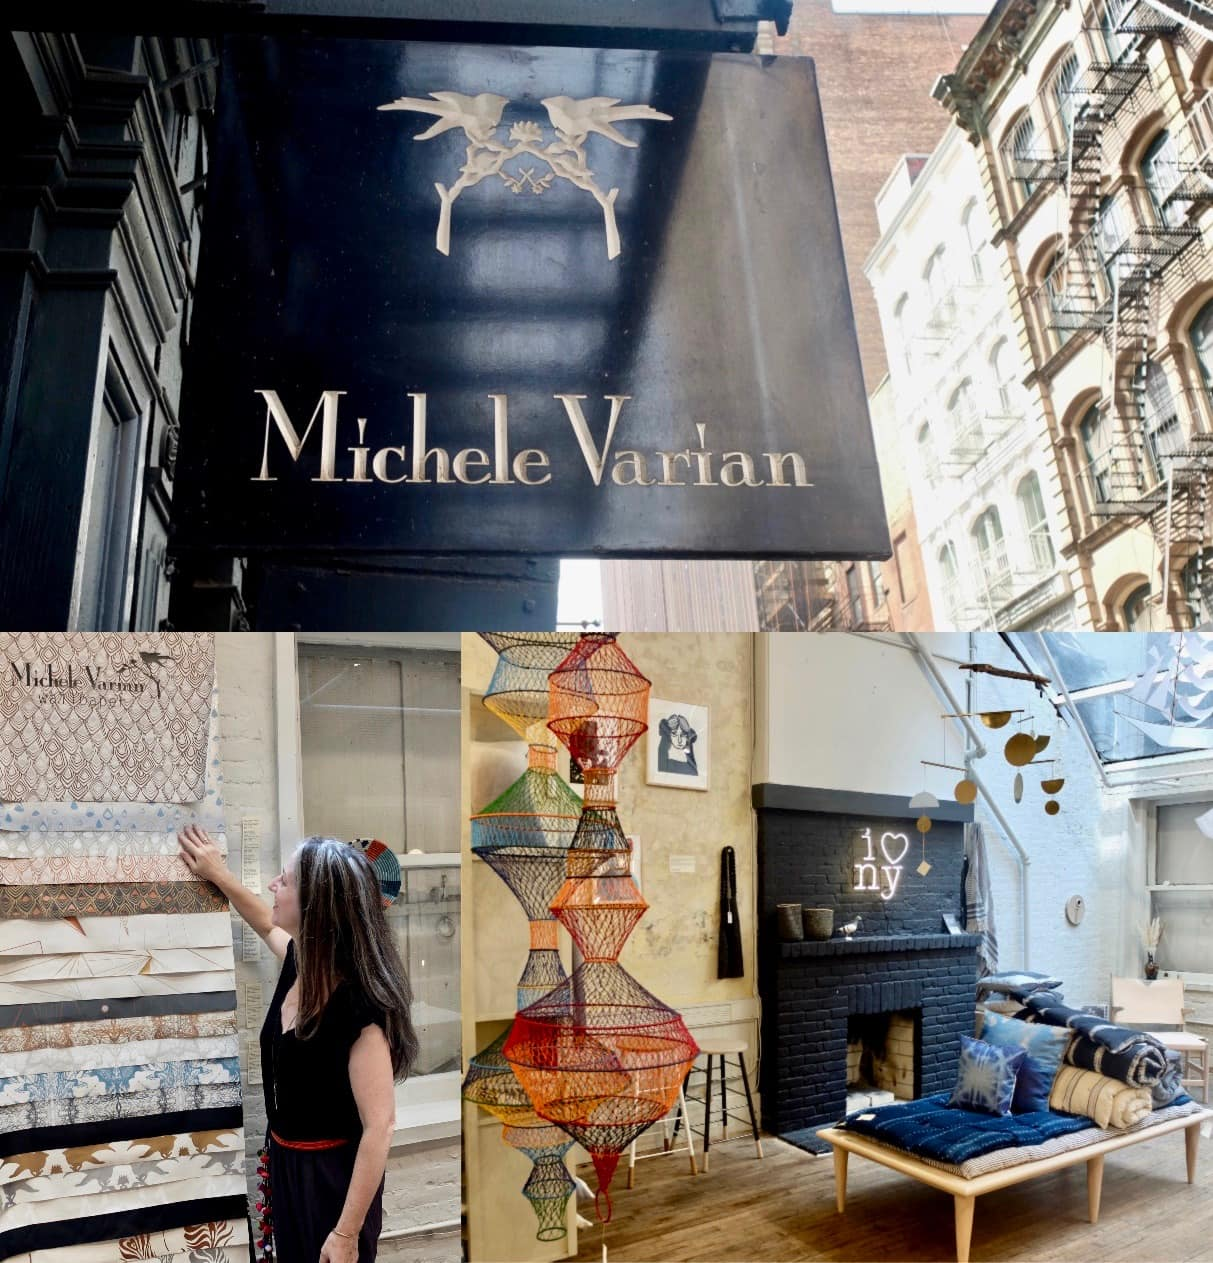 Michele varian store 2